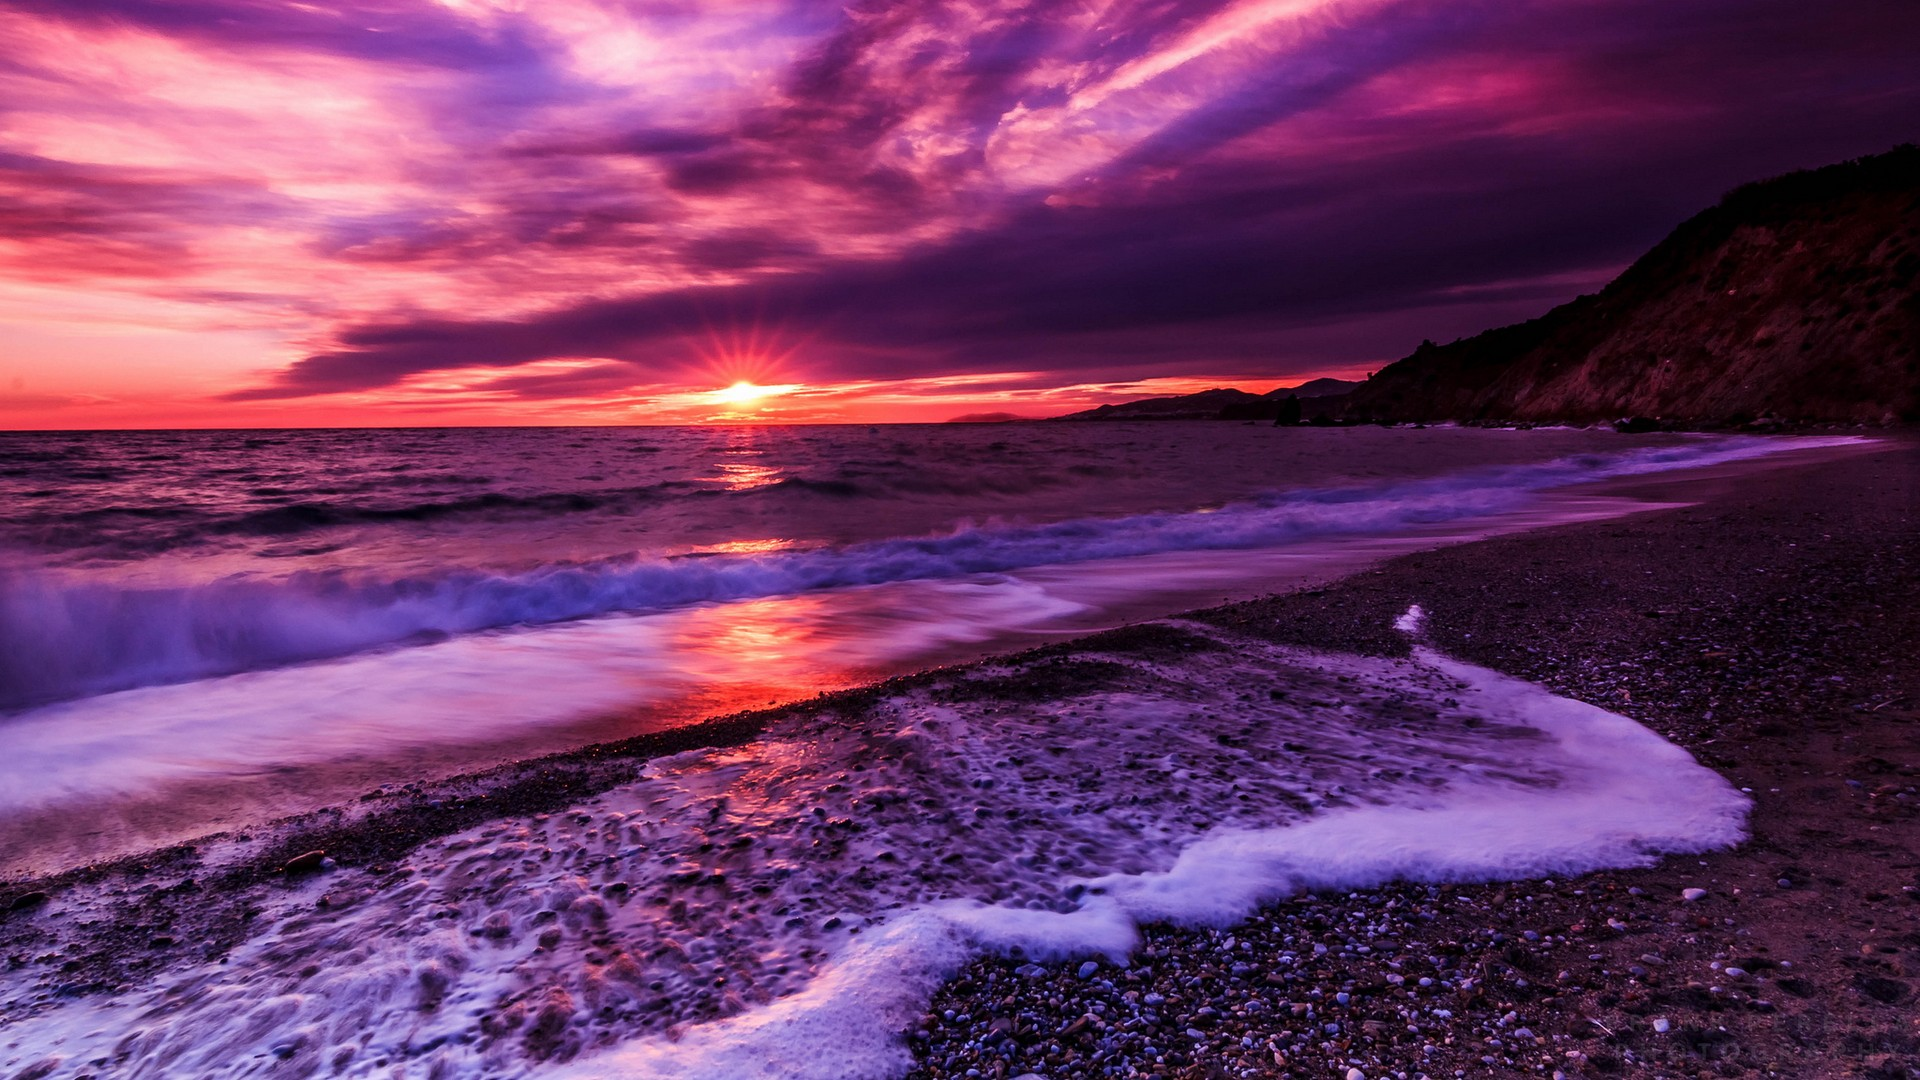 Purple Sunset hd wallpaper for laptop